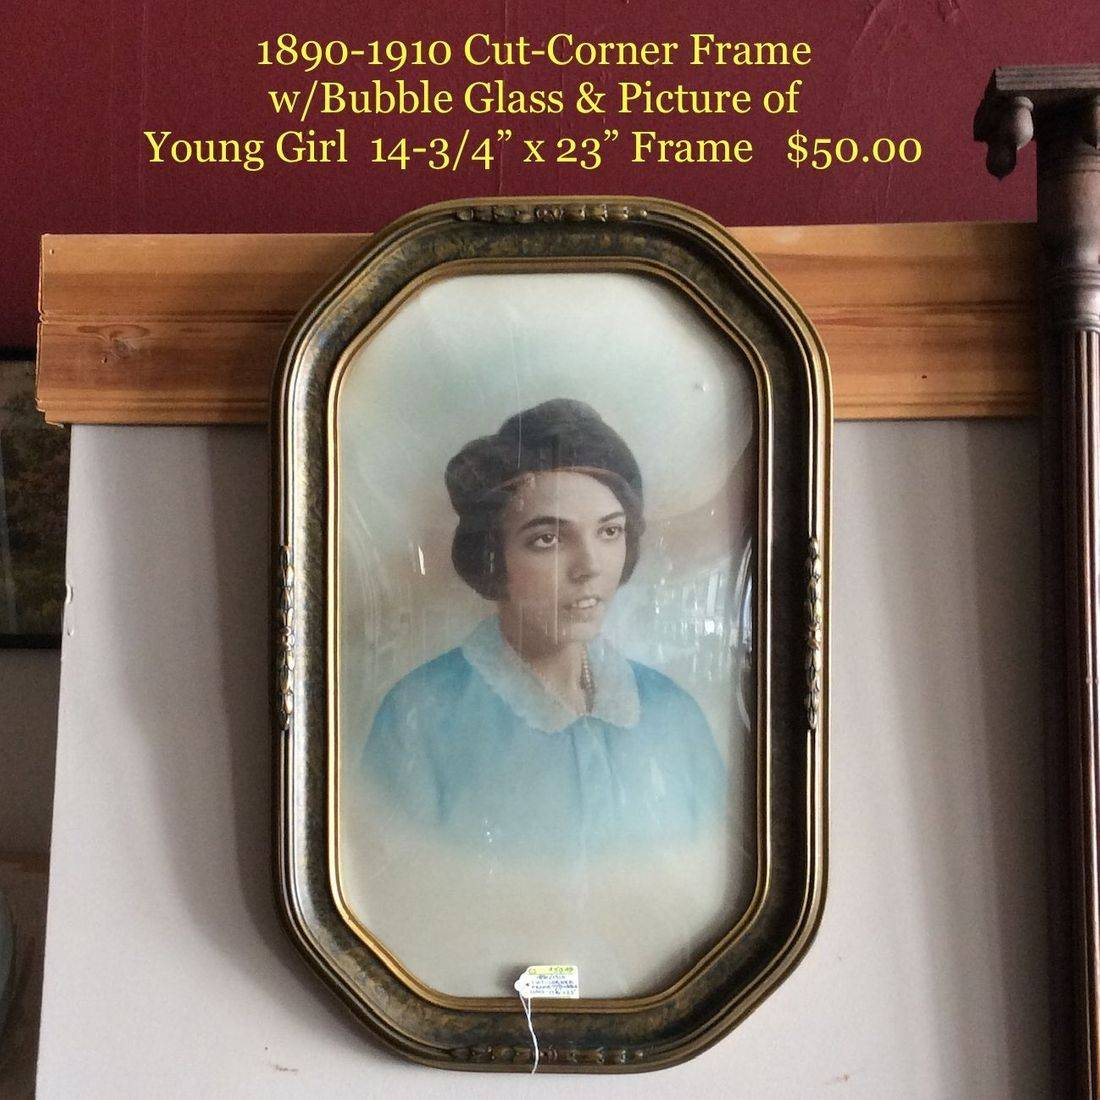 1890 - 1910 Cut-Corner Frame w/Bubble Glass & Picture of Young Girl   $50.00